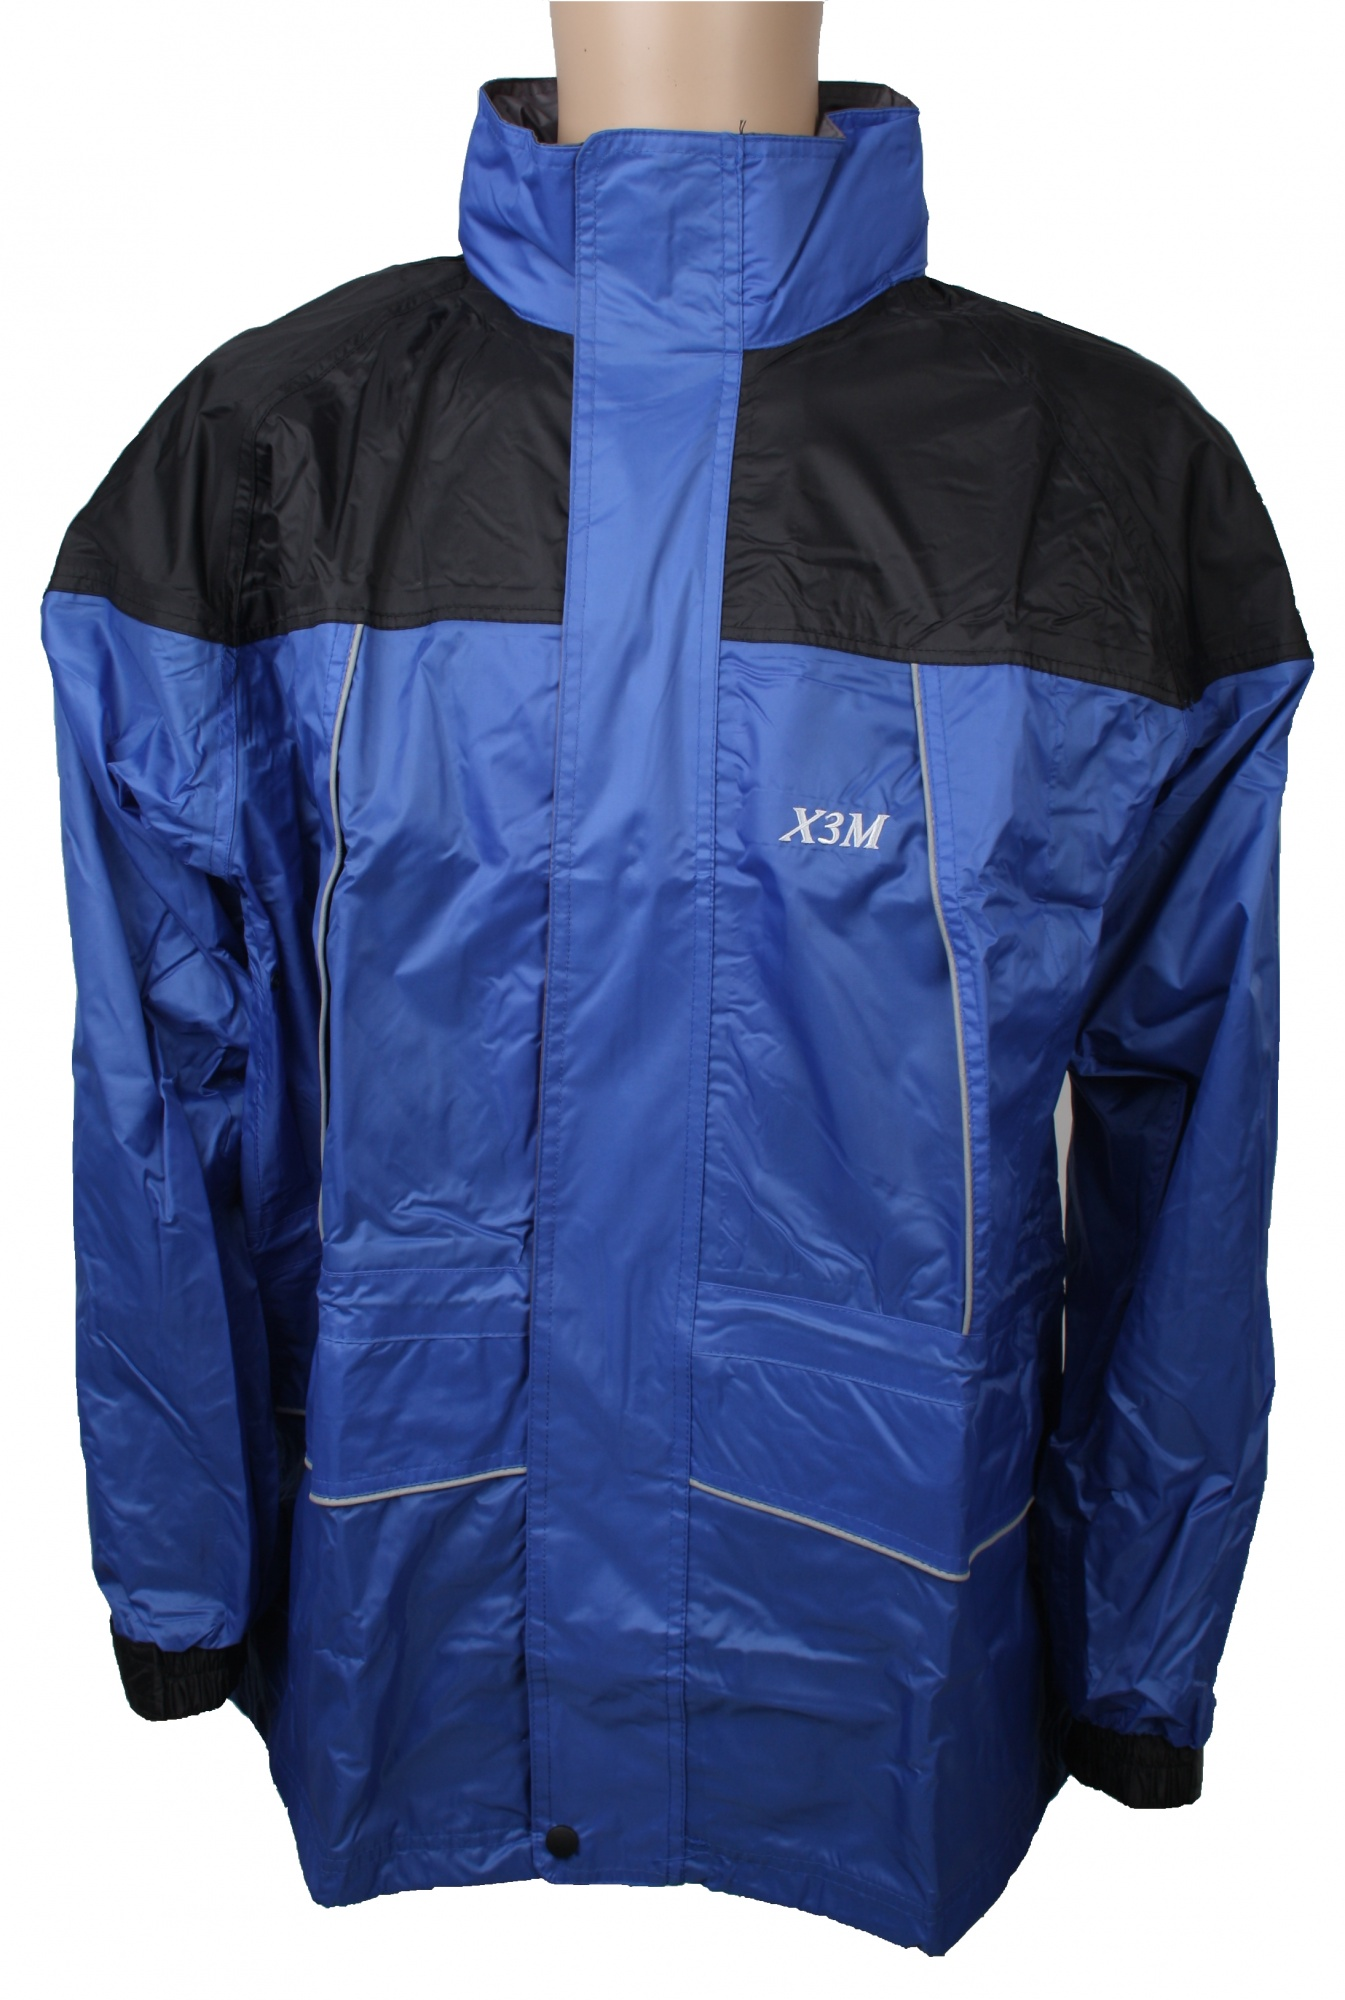 newest style of world-wide selection of better price for Performance Rain Jacket Black Blue